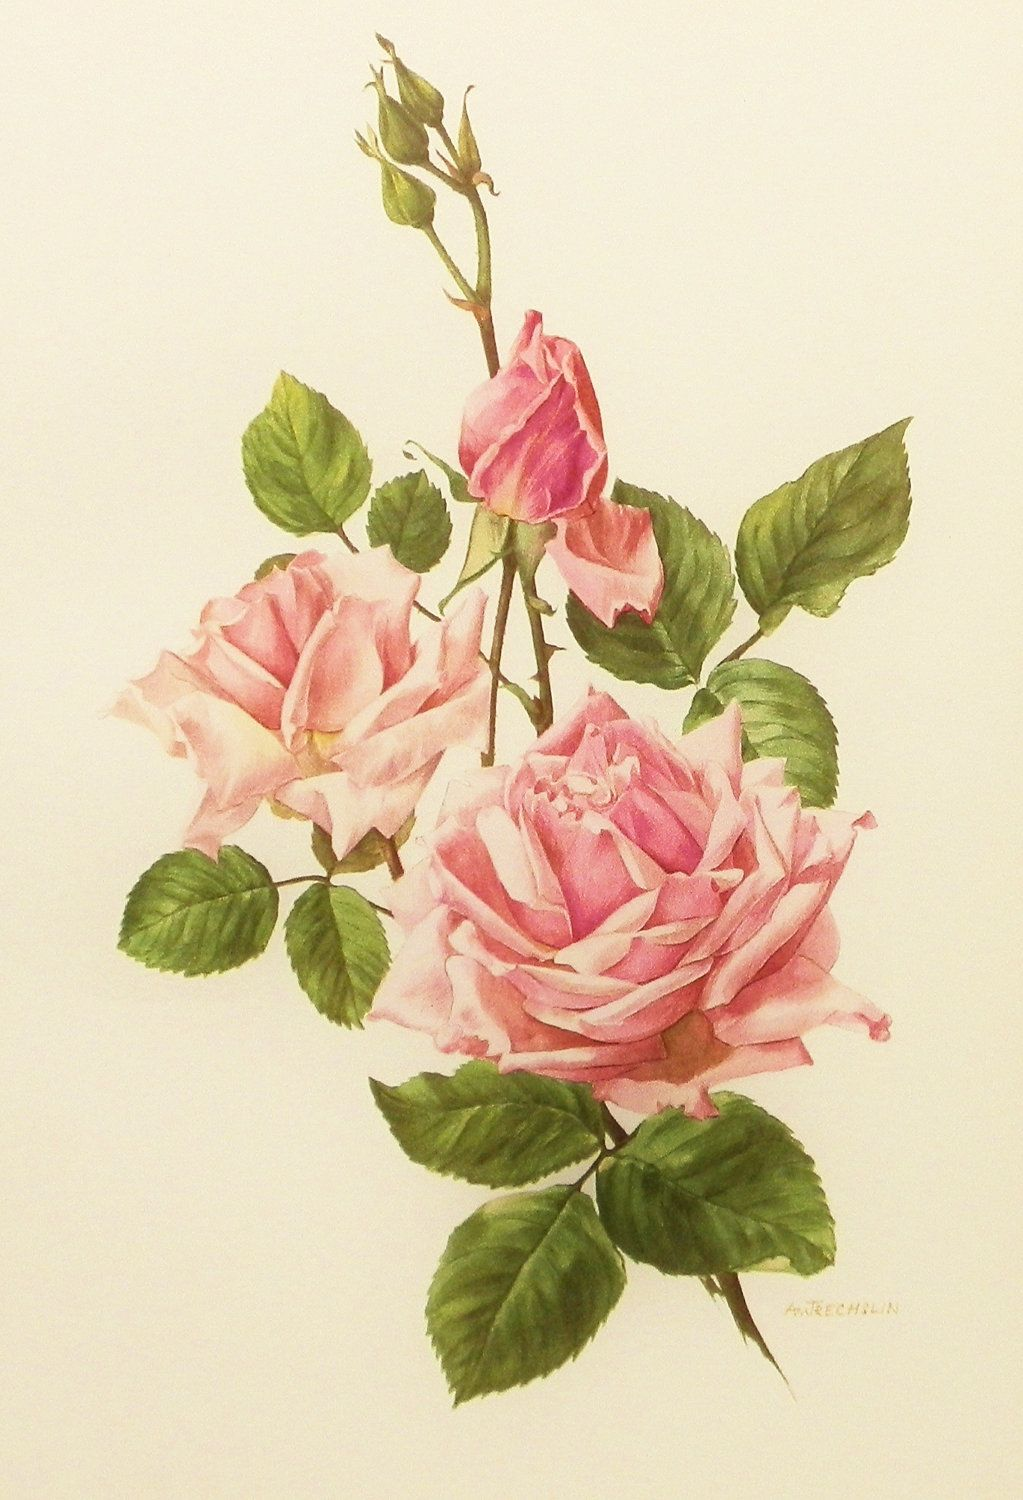 Vintage Shabby Country Decor, 1960s La France Tea Rose Flower Print (Book Plate No. 17).  Etsy.